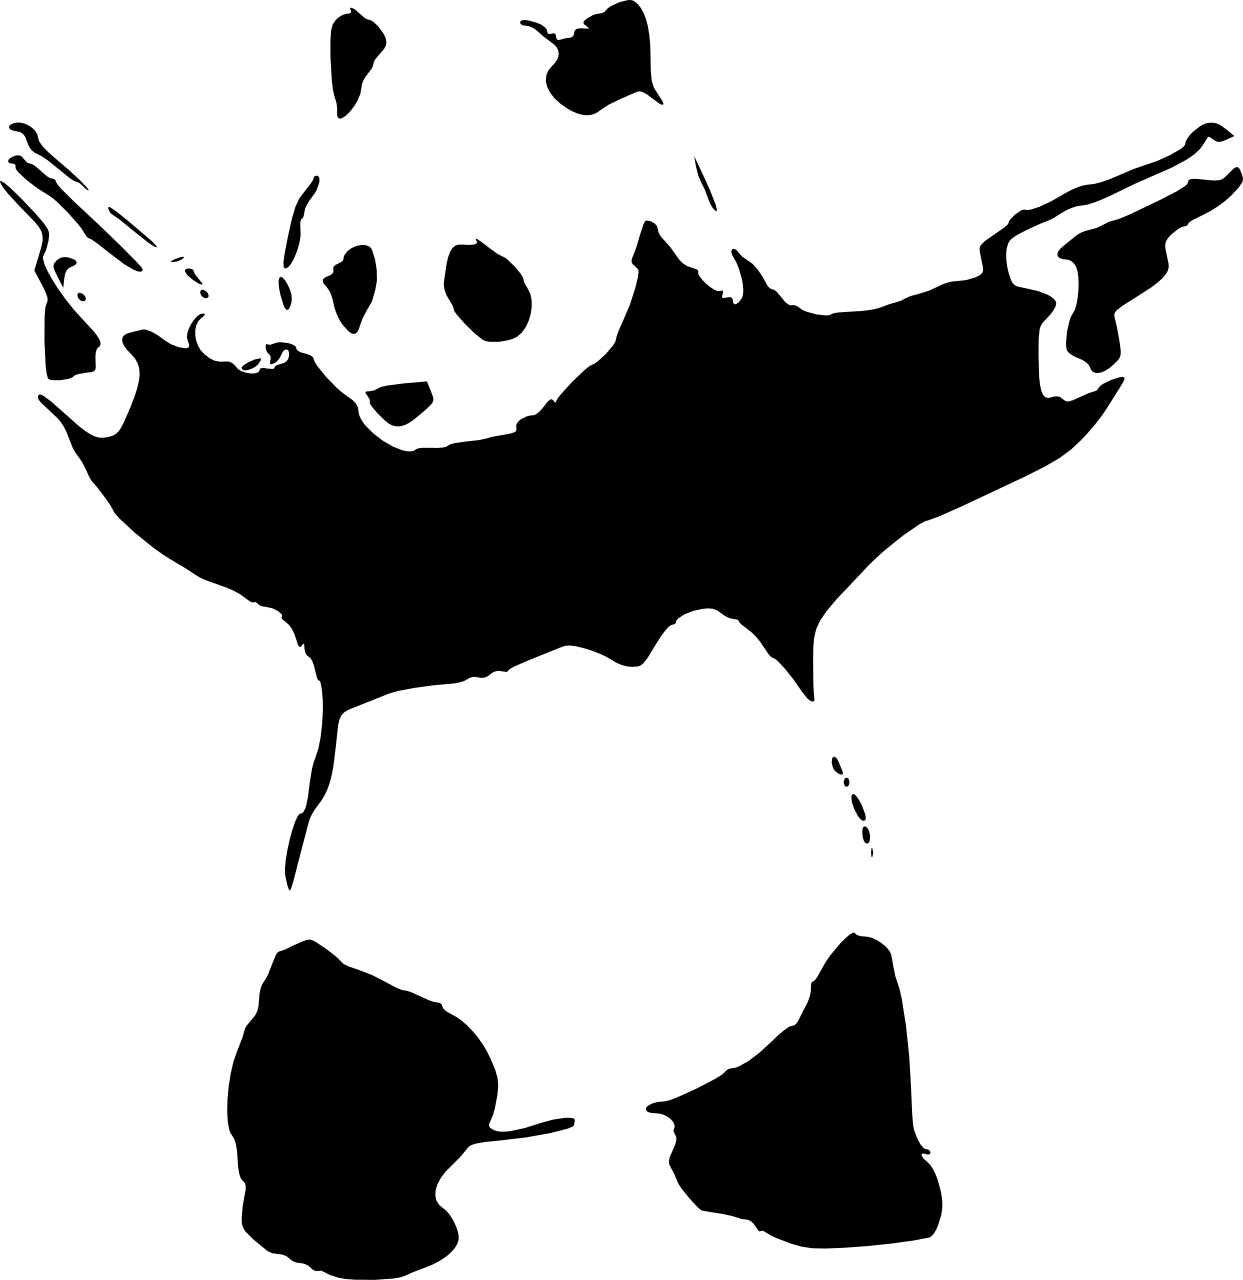 Gun wielding panda stencil. Words clipart graffiti